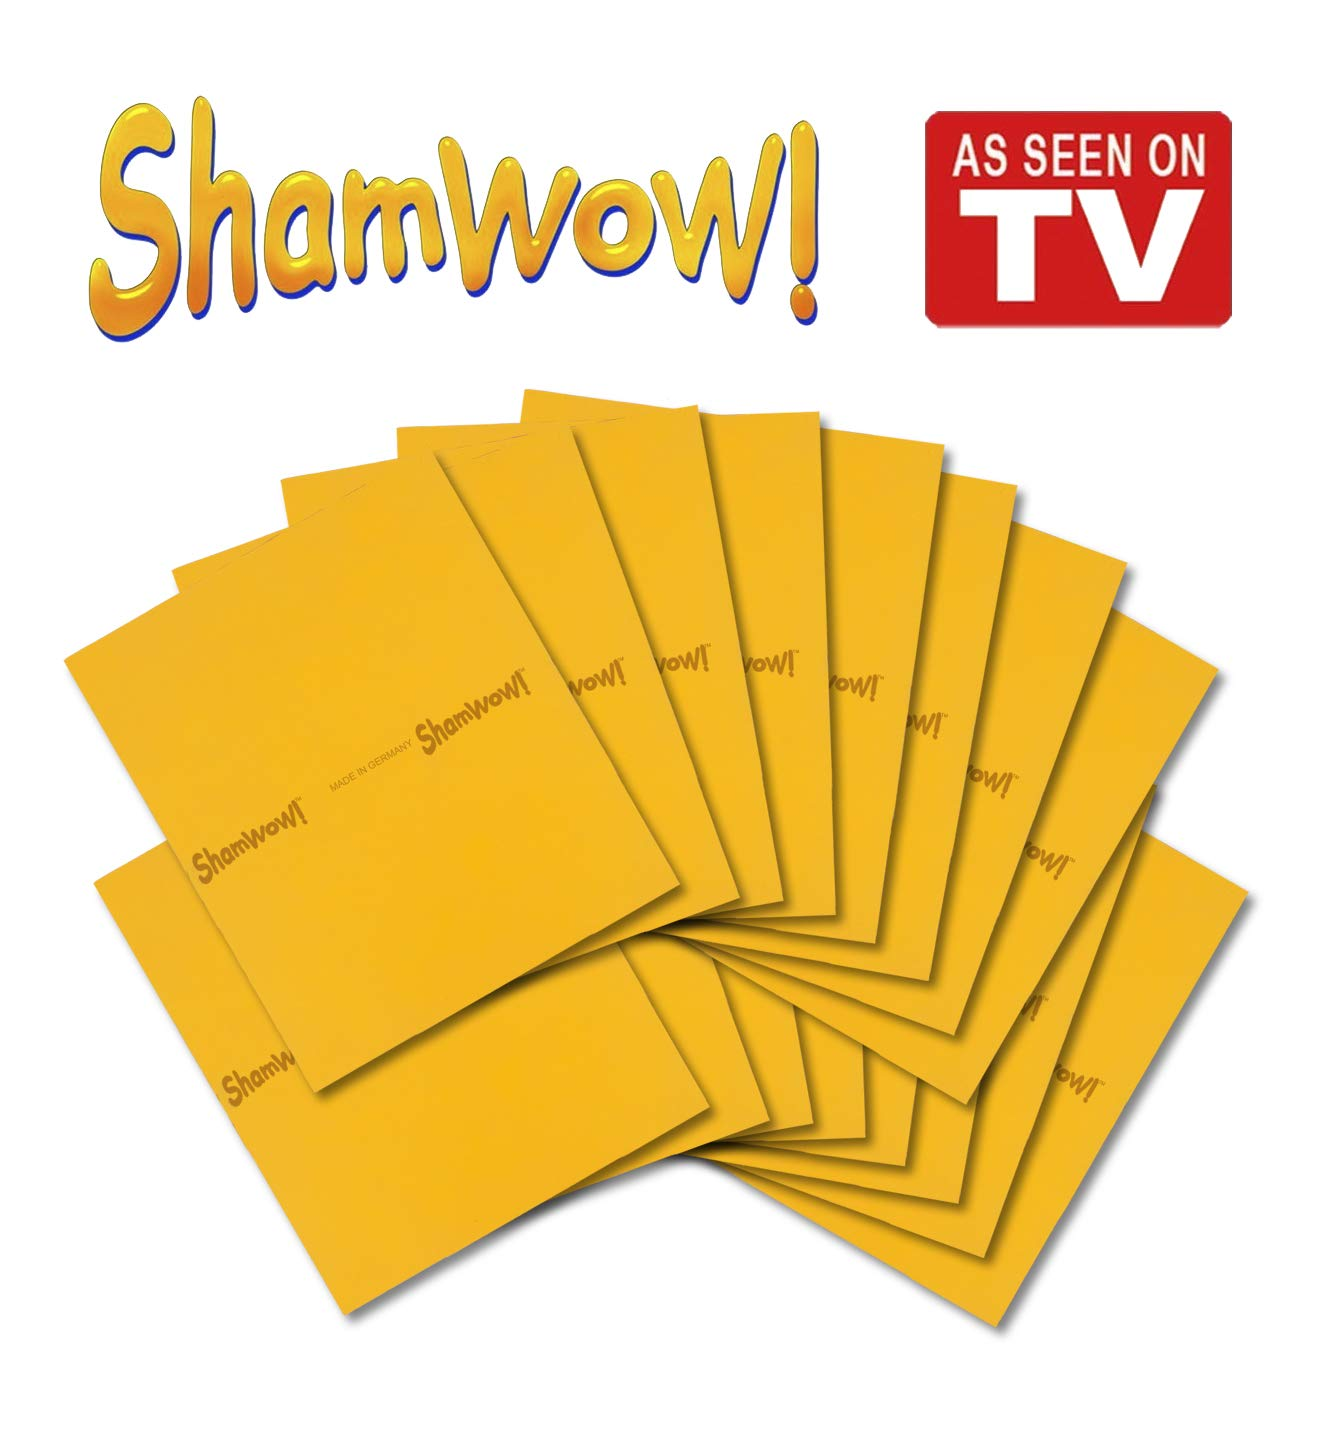 The Original Shamwow - Super Absorbent Multi-Purpose Cleaning Shammy (Chamois) Towel Cloth, Machine Washable, Will Not Scratch, Orange (16 Pack) by ShamWow